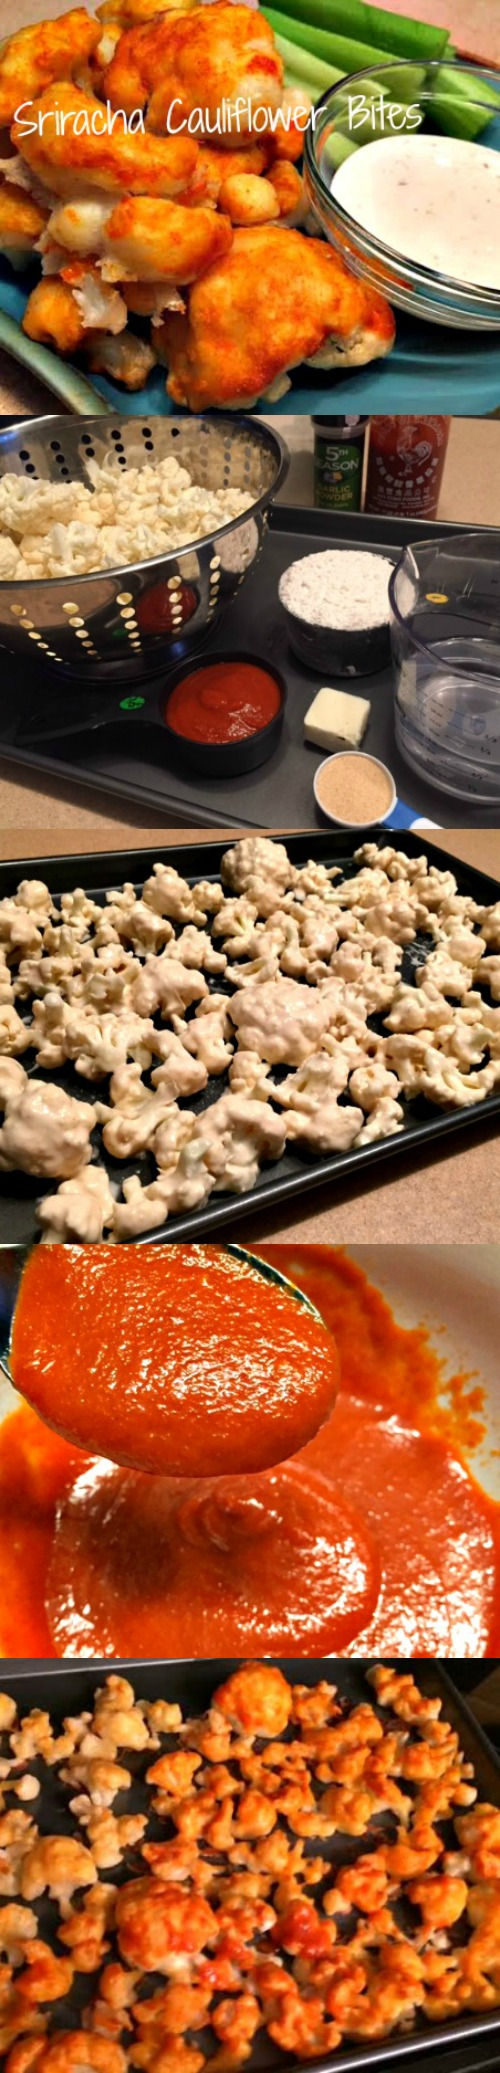 Sriracha Baked Cauliflower Weve Tried It